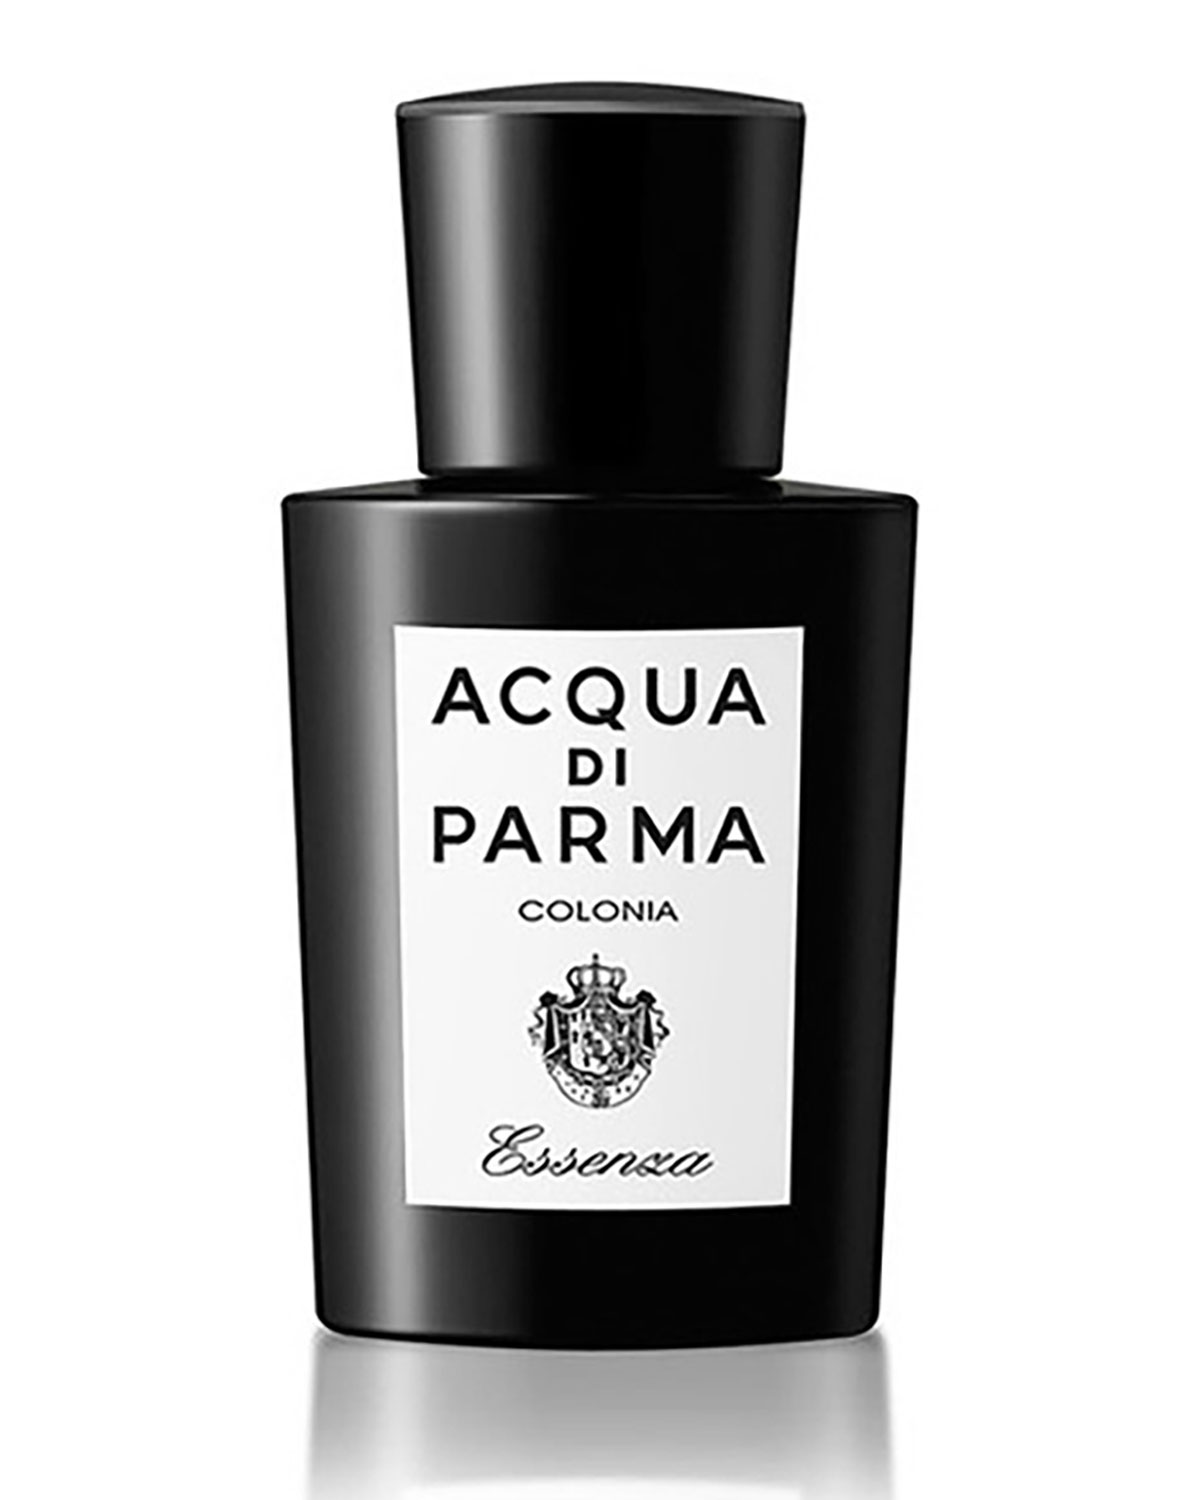 Acqua Di Parma 1.7 OZ. COLONIA ESSENZA EAU DE COLOGNE SPRAY